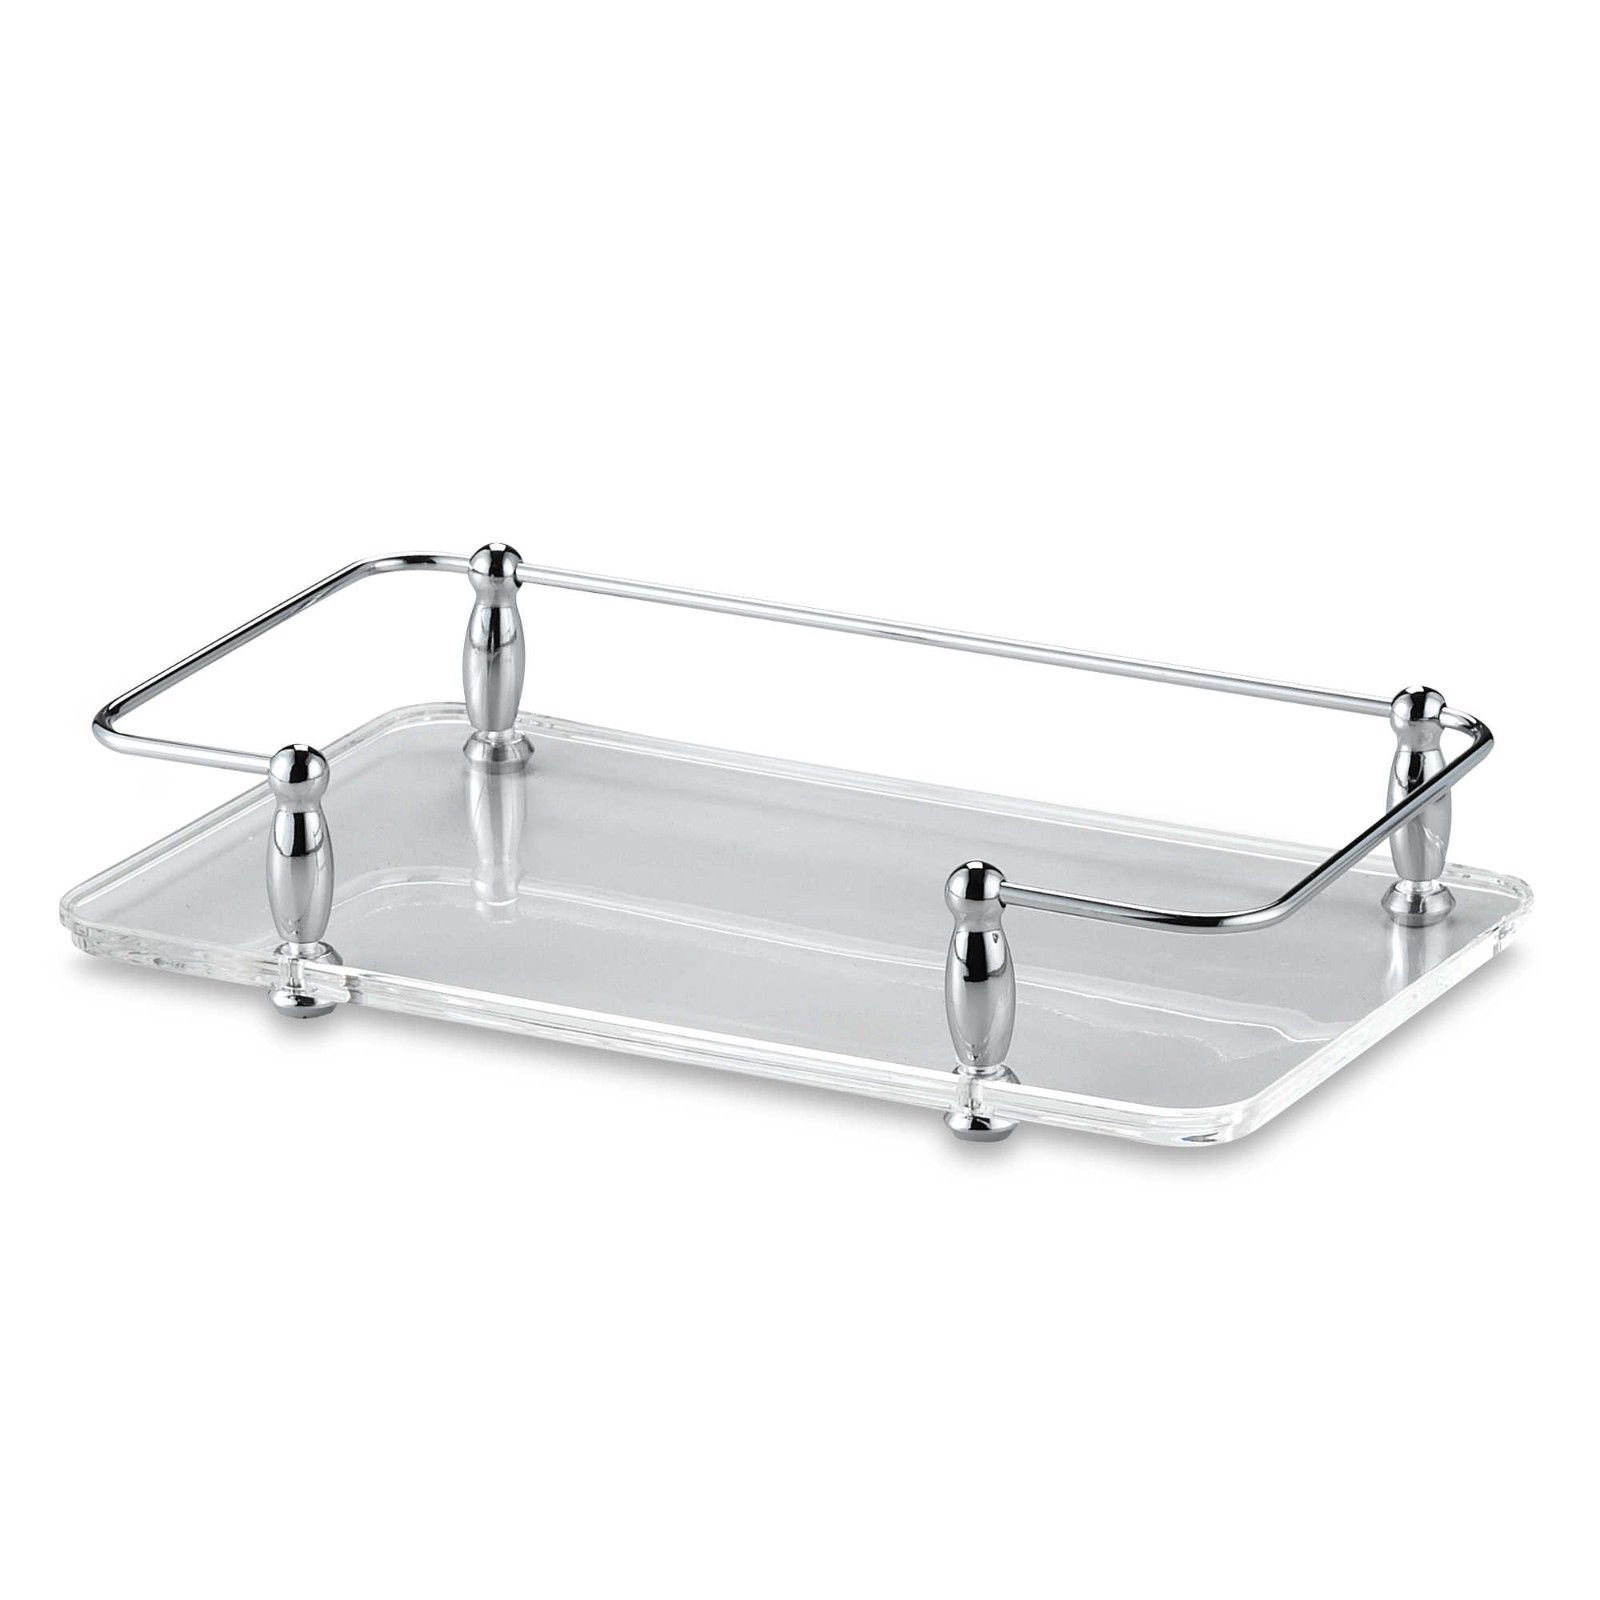 Asher Amada Acrylic and Chrome Guest Towel Holder Vanity Tray 2'' x 9.5'' x 5'' Bathroom Decor by Asher Amada